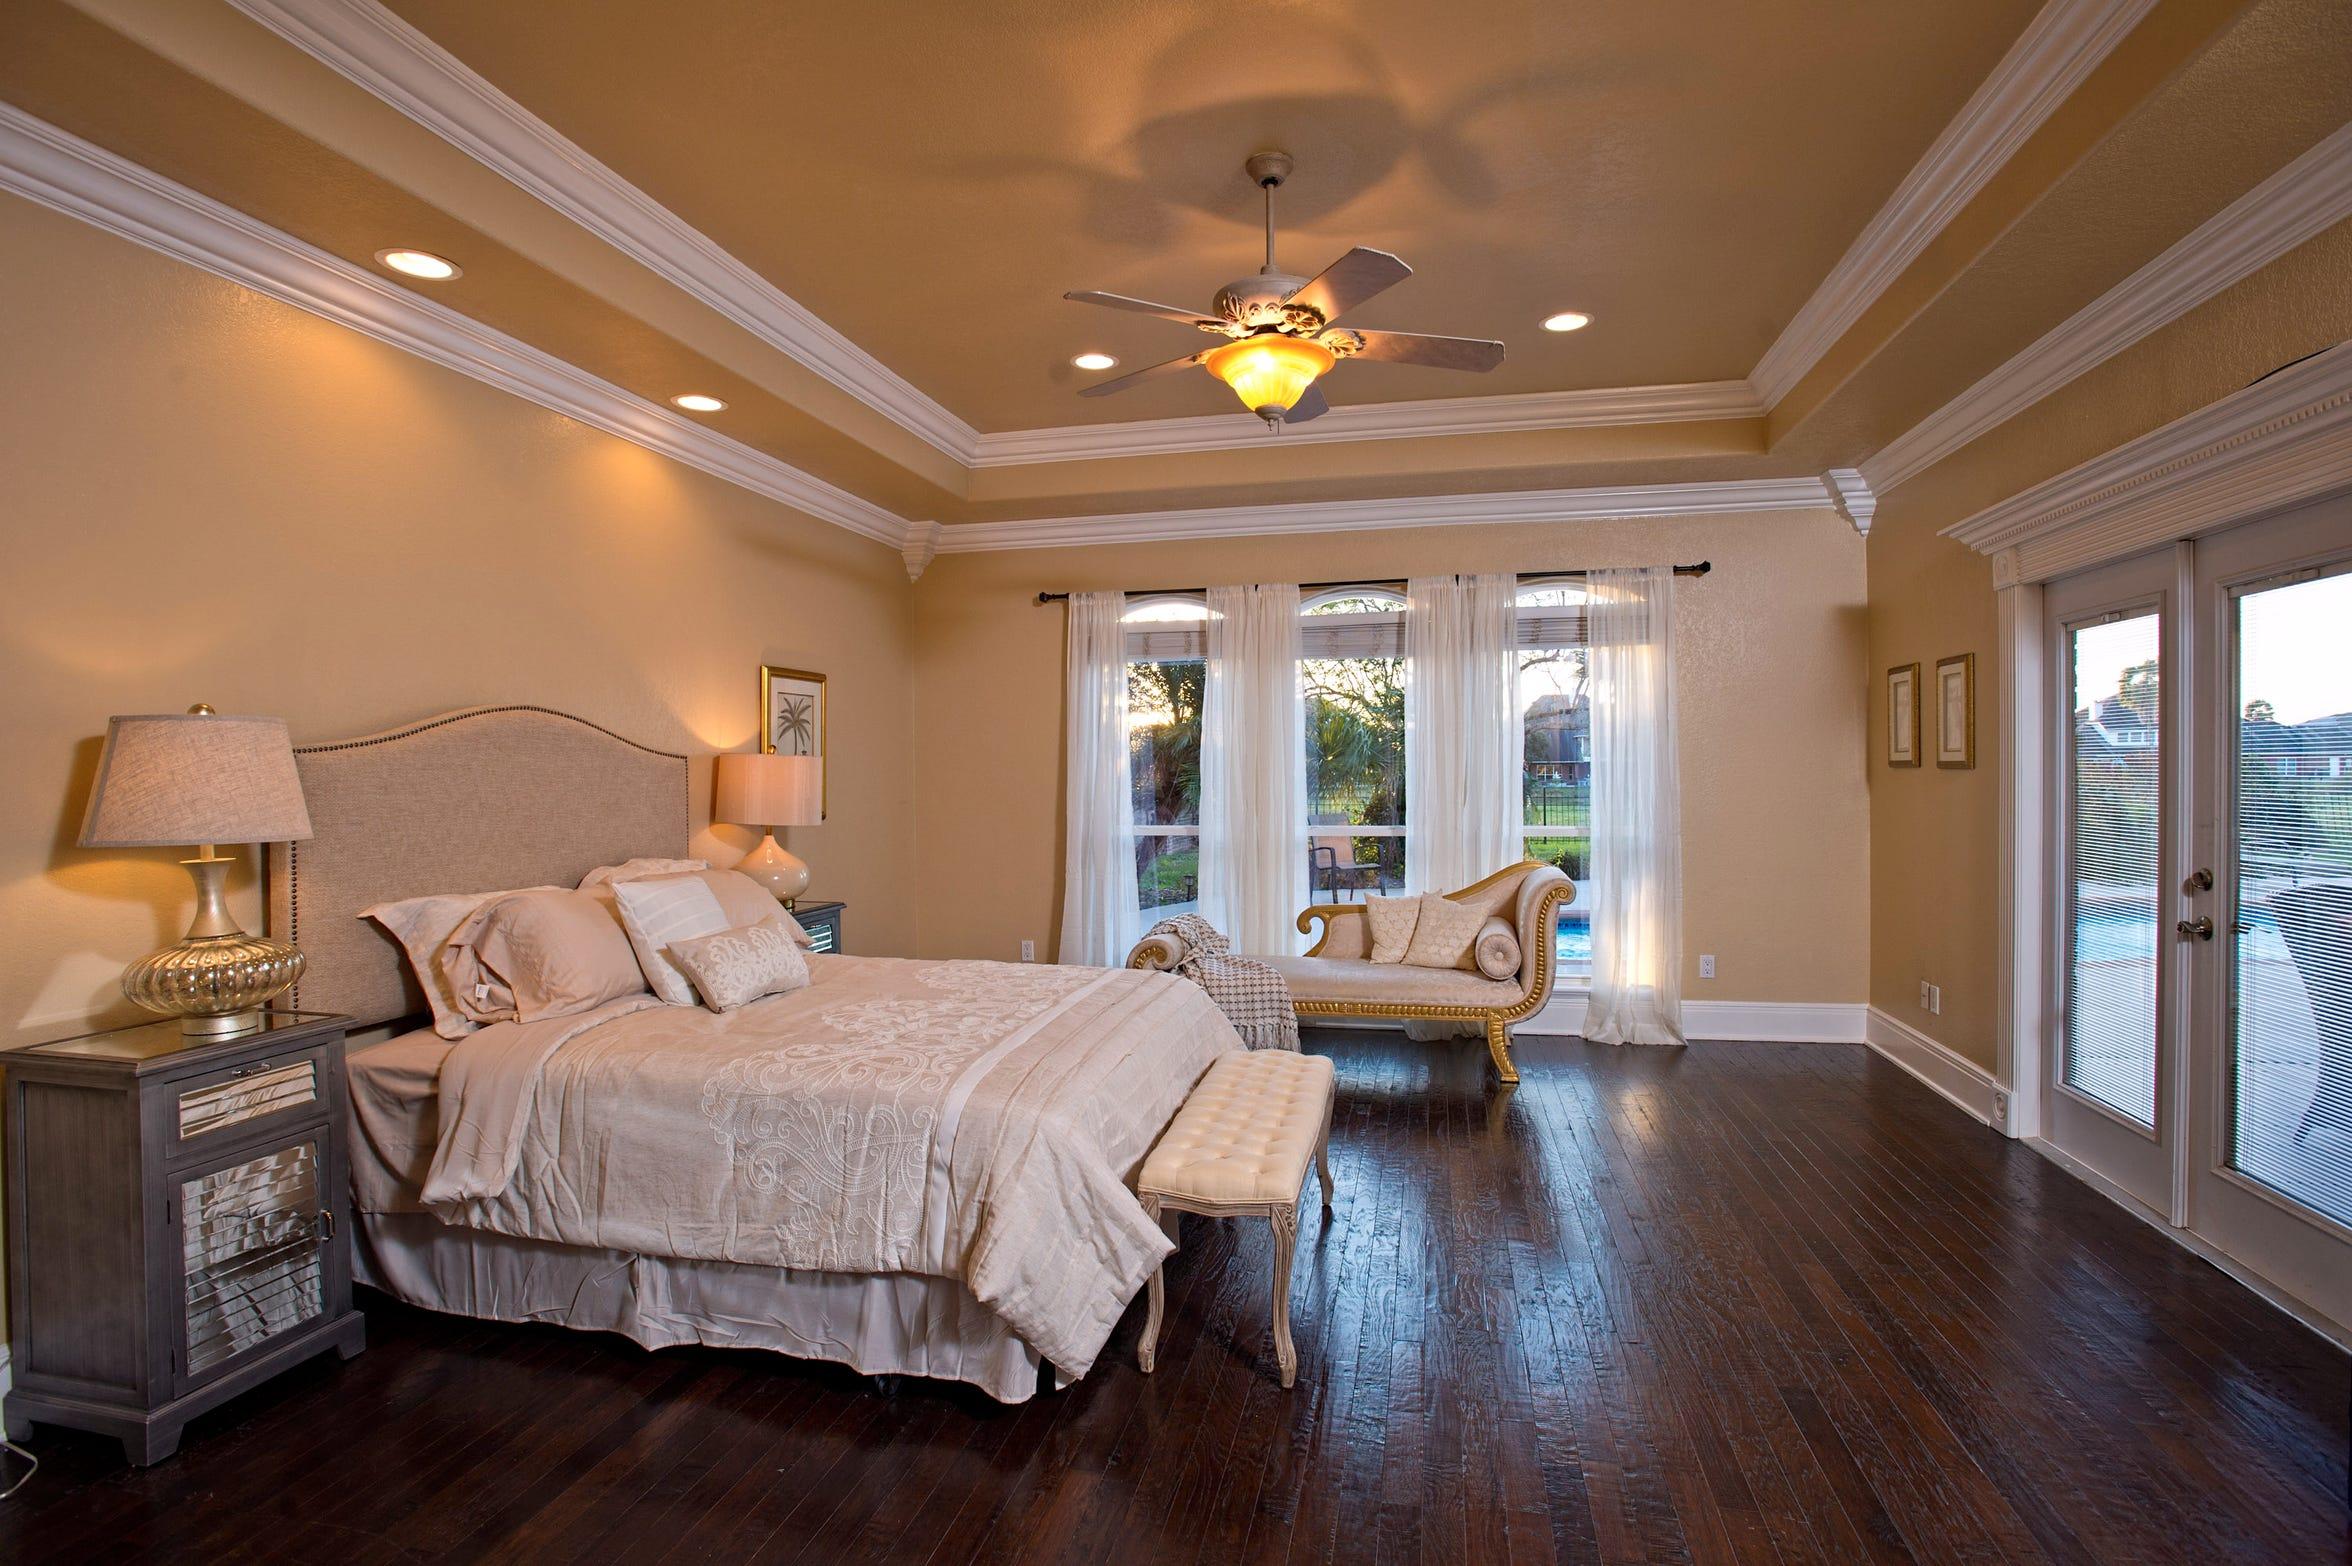 The extra spacious master bedroom takes in views and private access to the pool and yard area.